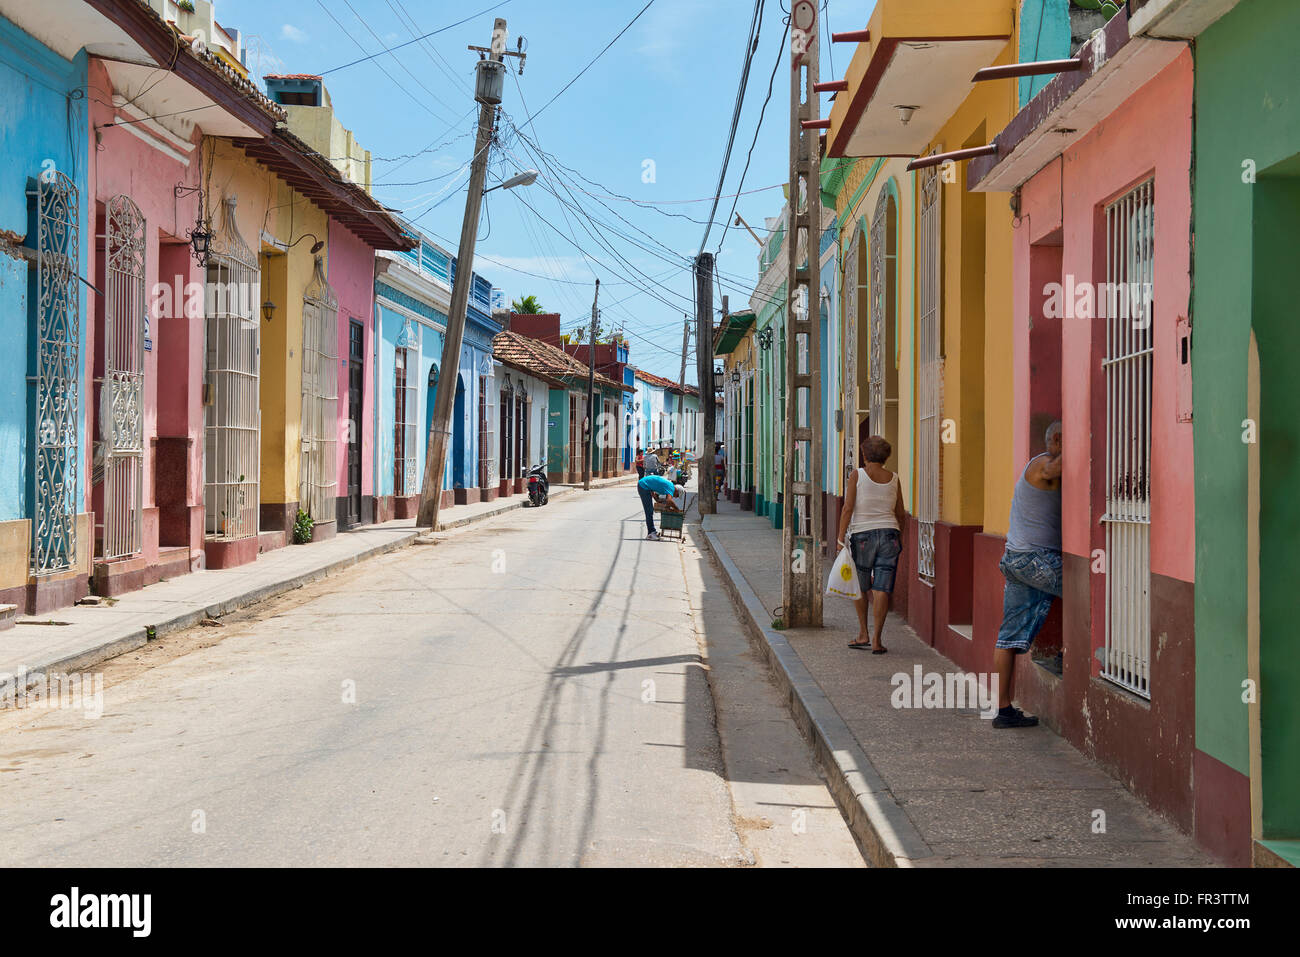 A street in the colorful old colonial town of Trinidad, Cuba. - Stock Image